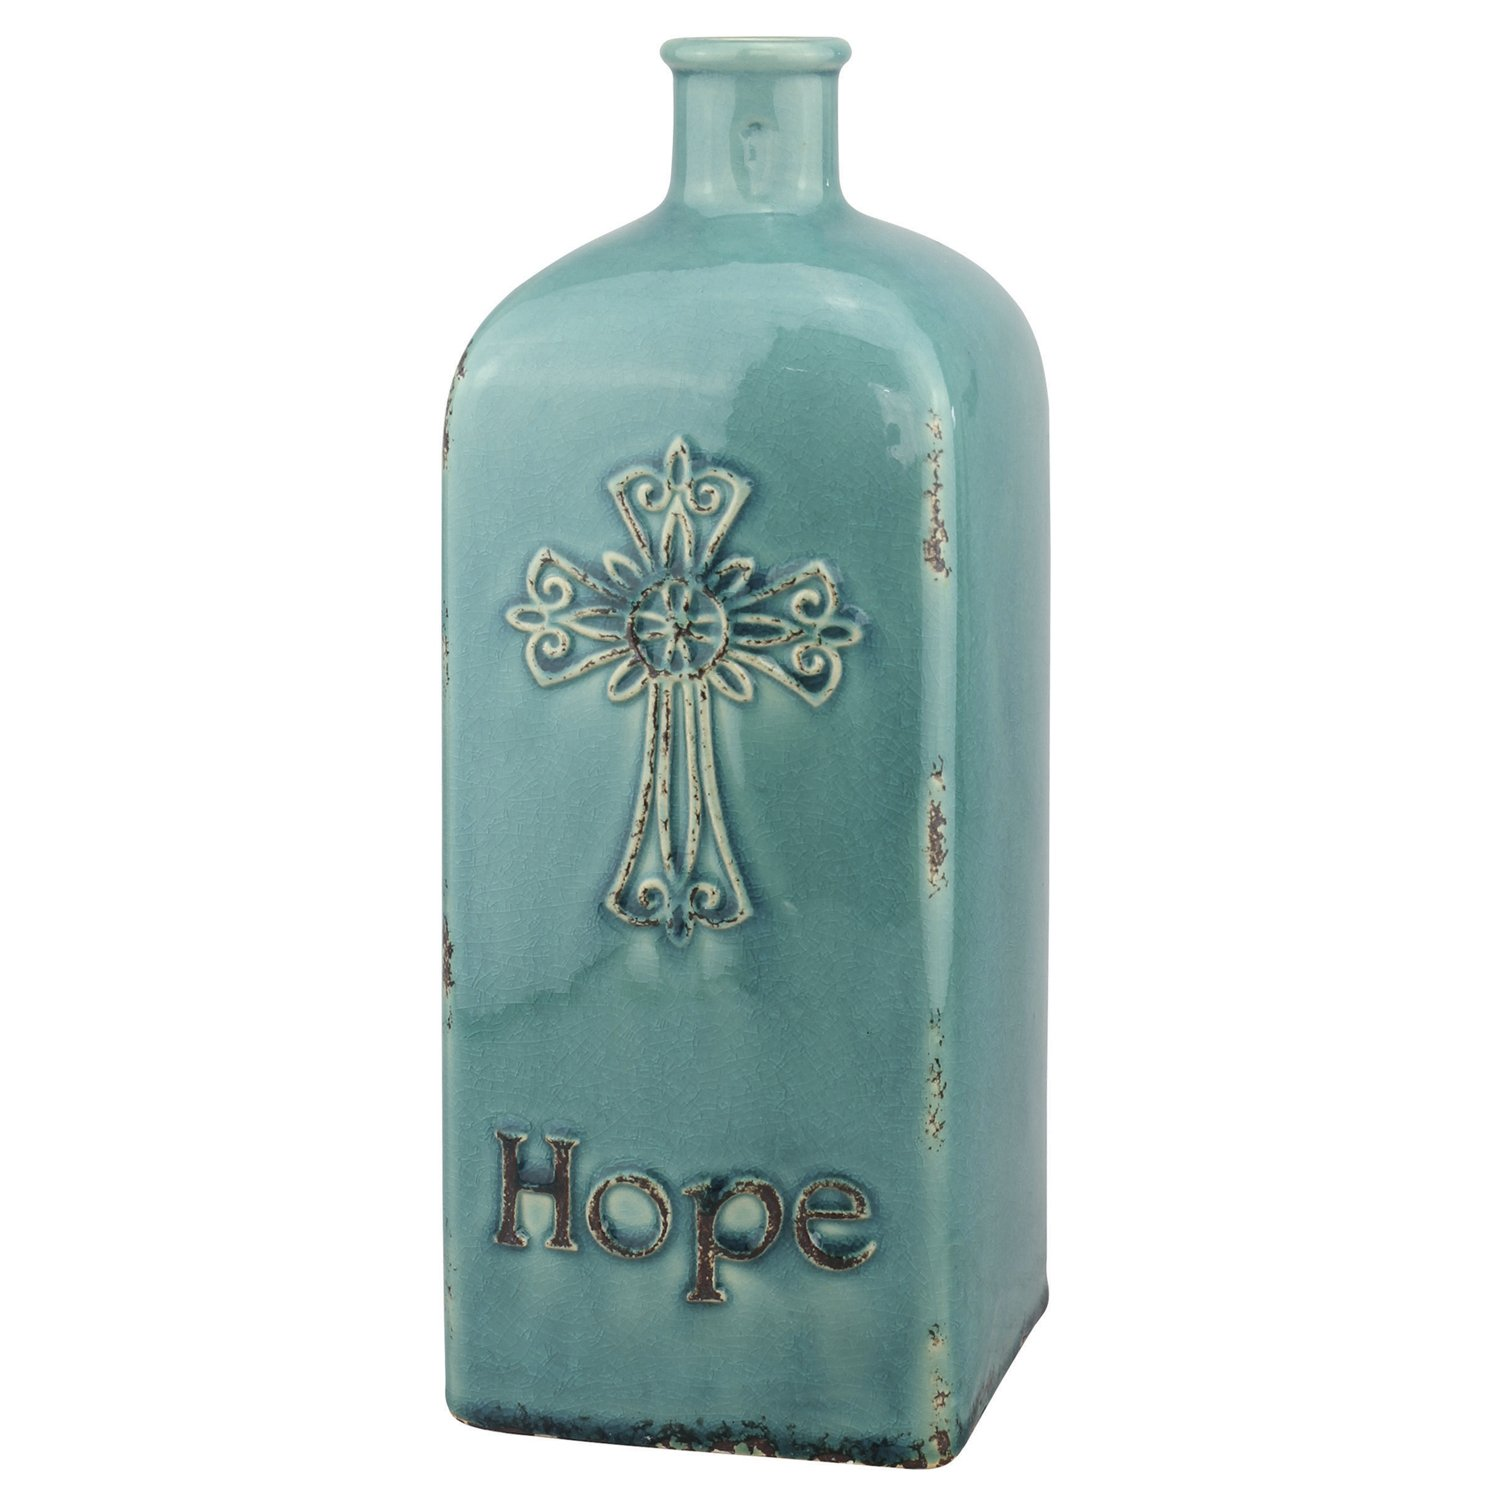 "Stonebriar Decorative 12"" Worn Turquoise Ceramic Bottle with Cross Detail, French Country Home Decor Accents, Vintage Vase Decoration for Dried or Artificial Flowers"